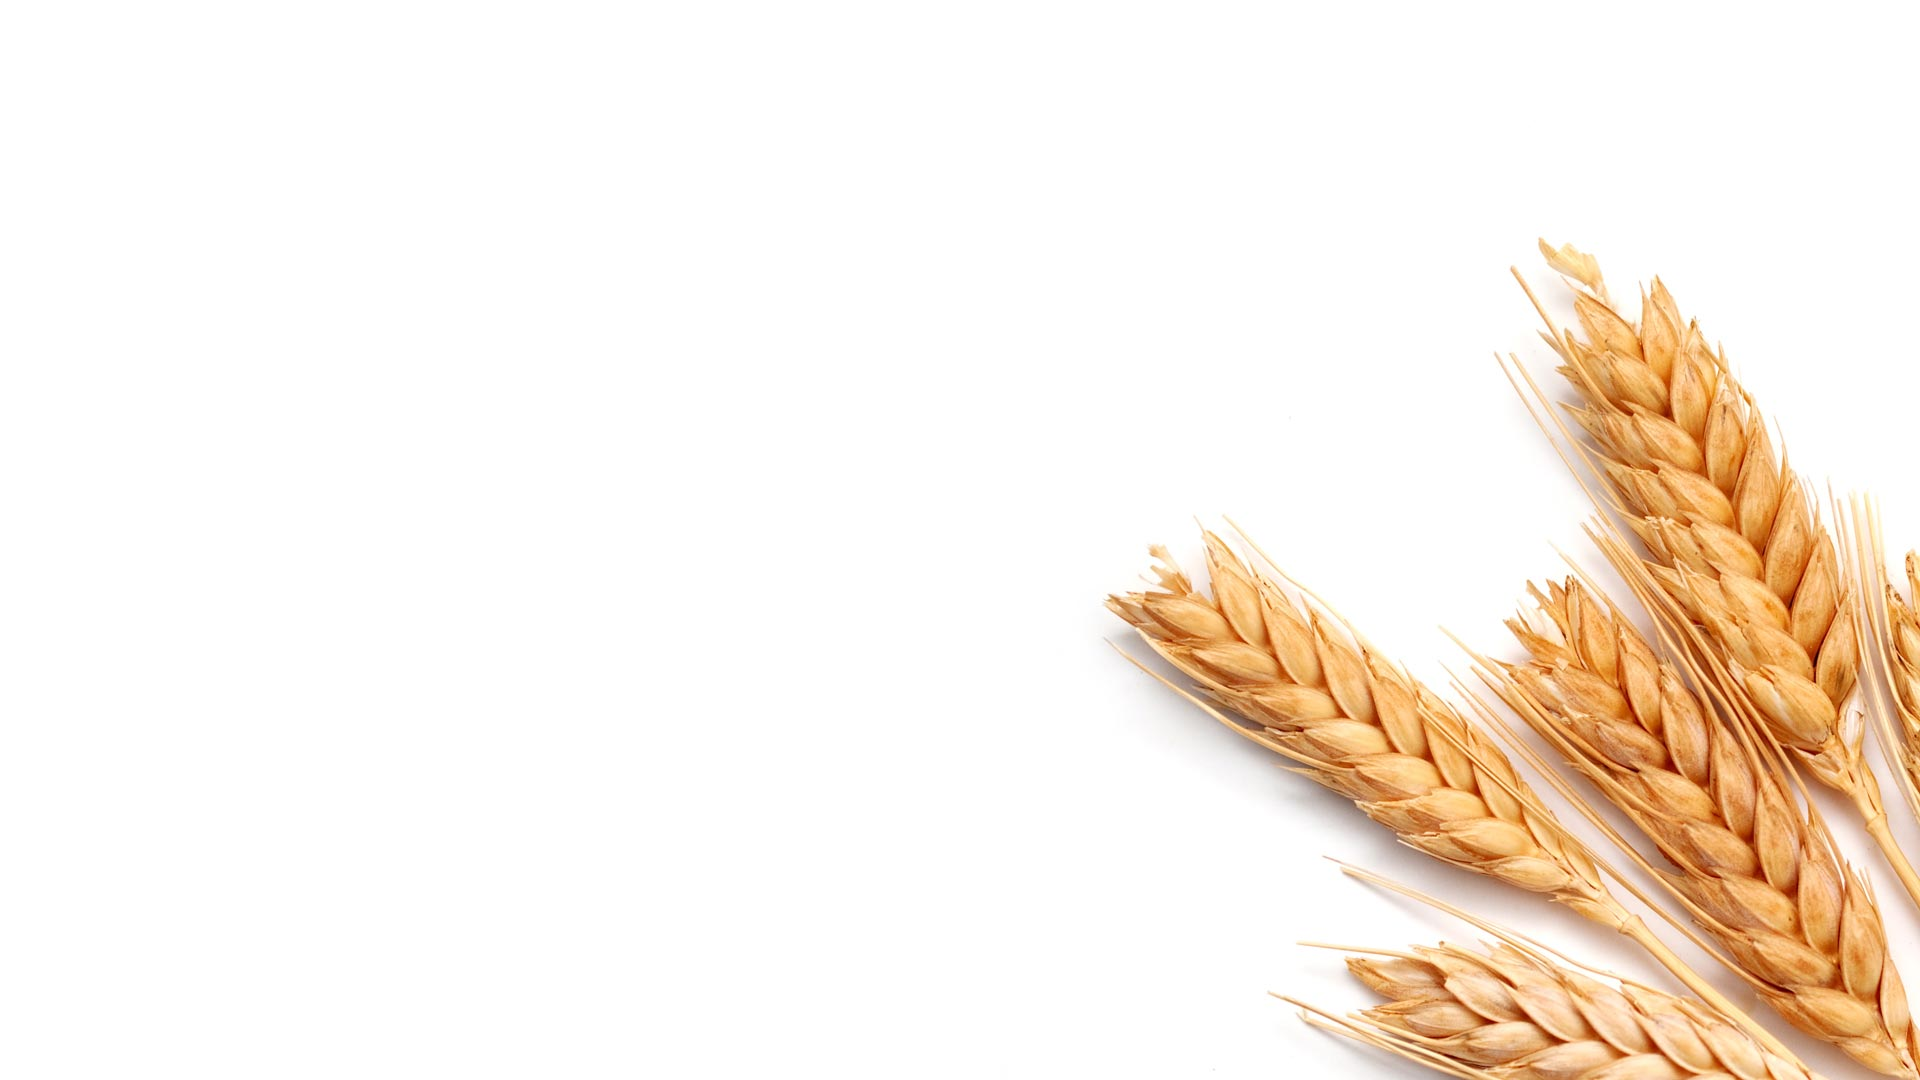 spring cereal seeds barley oats spring wheat mixed grains